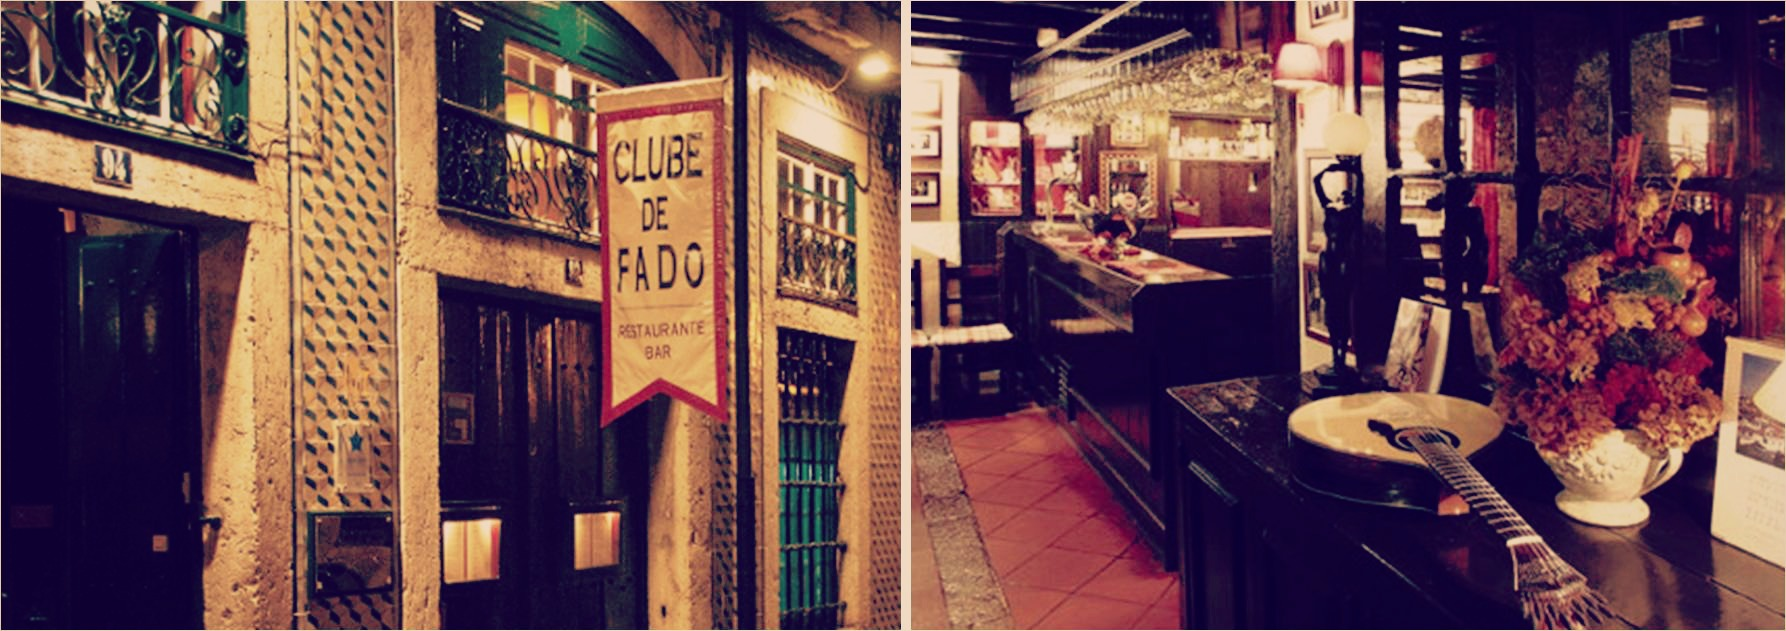 clube do fado_blog edit